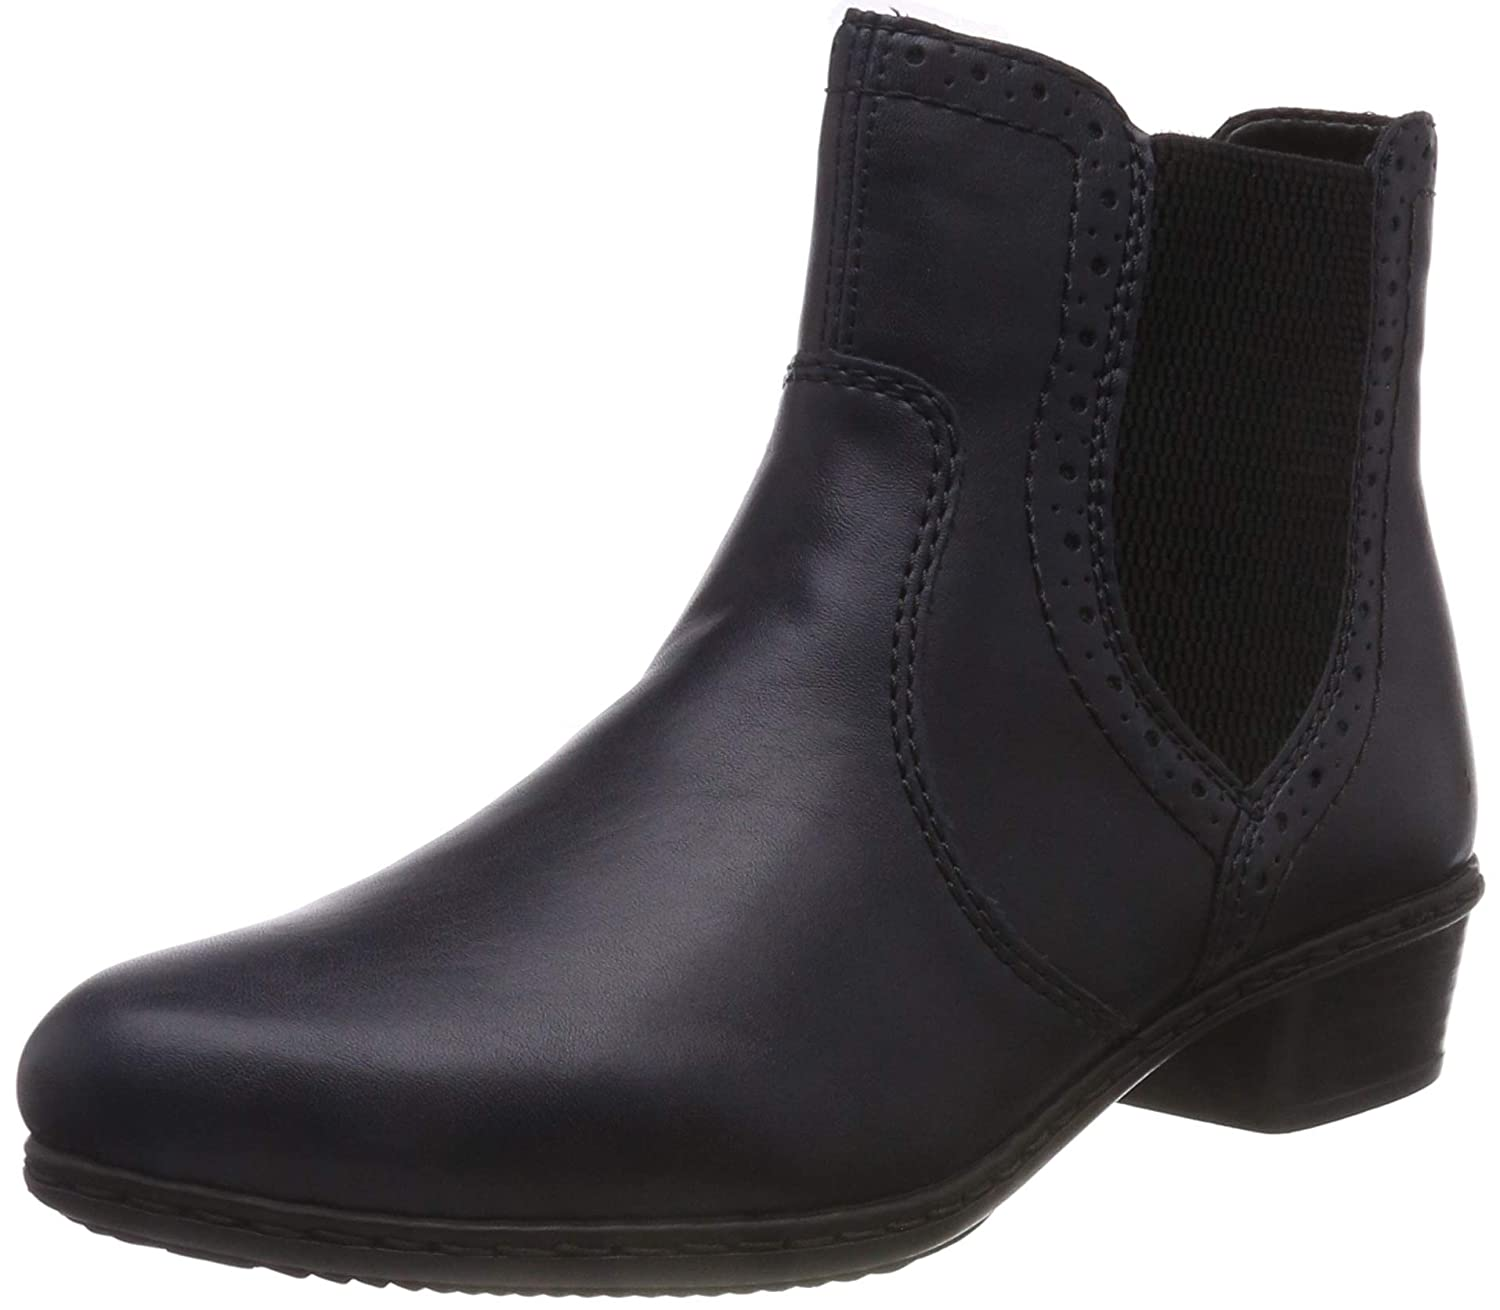 Rieker Y0771 Boots